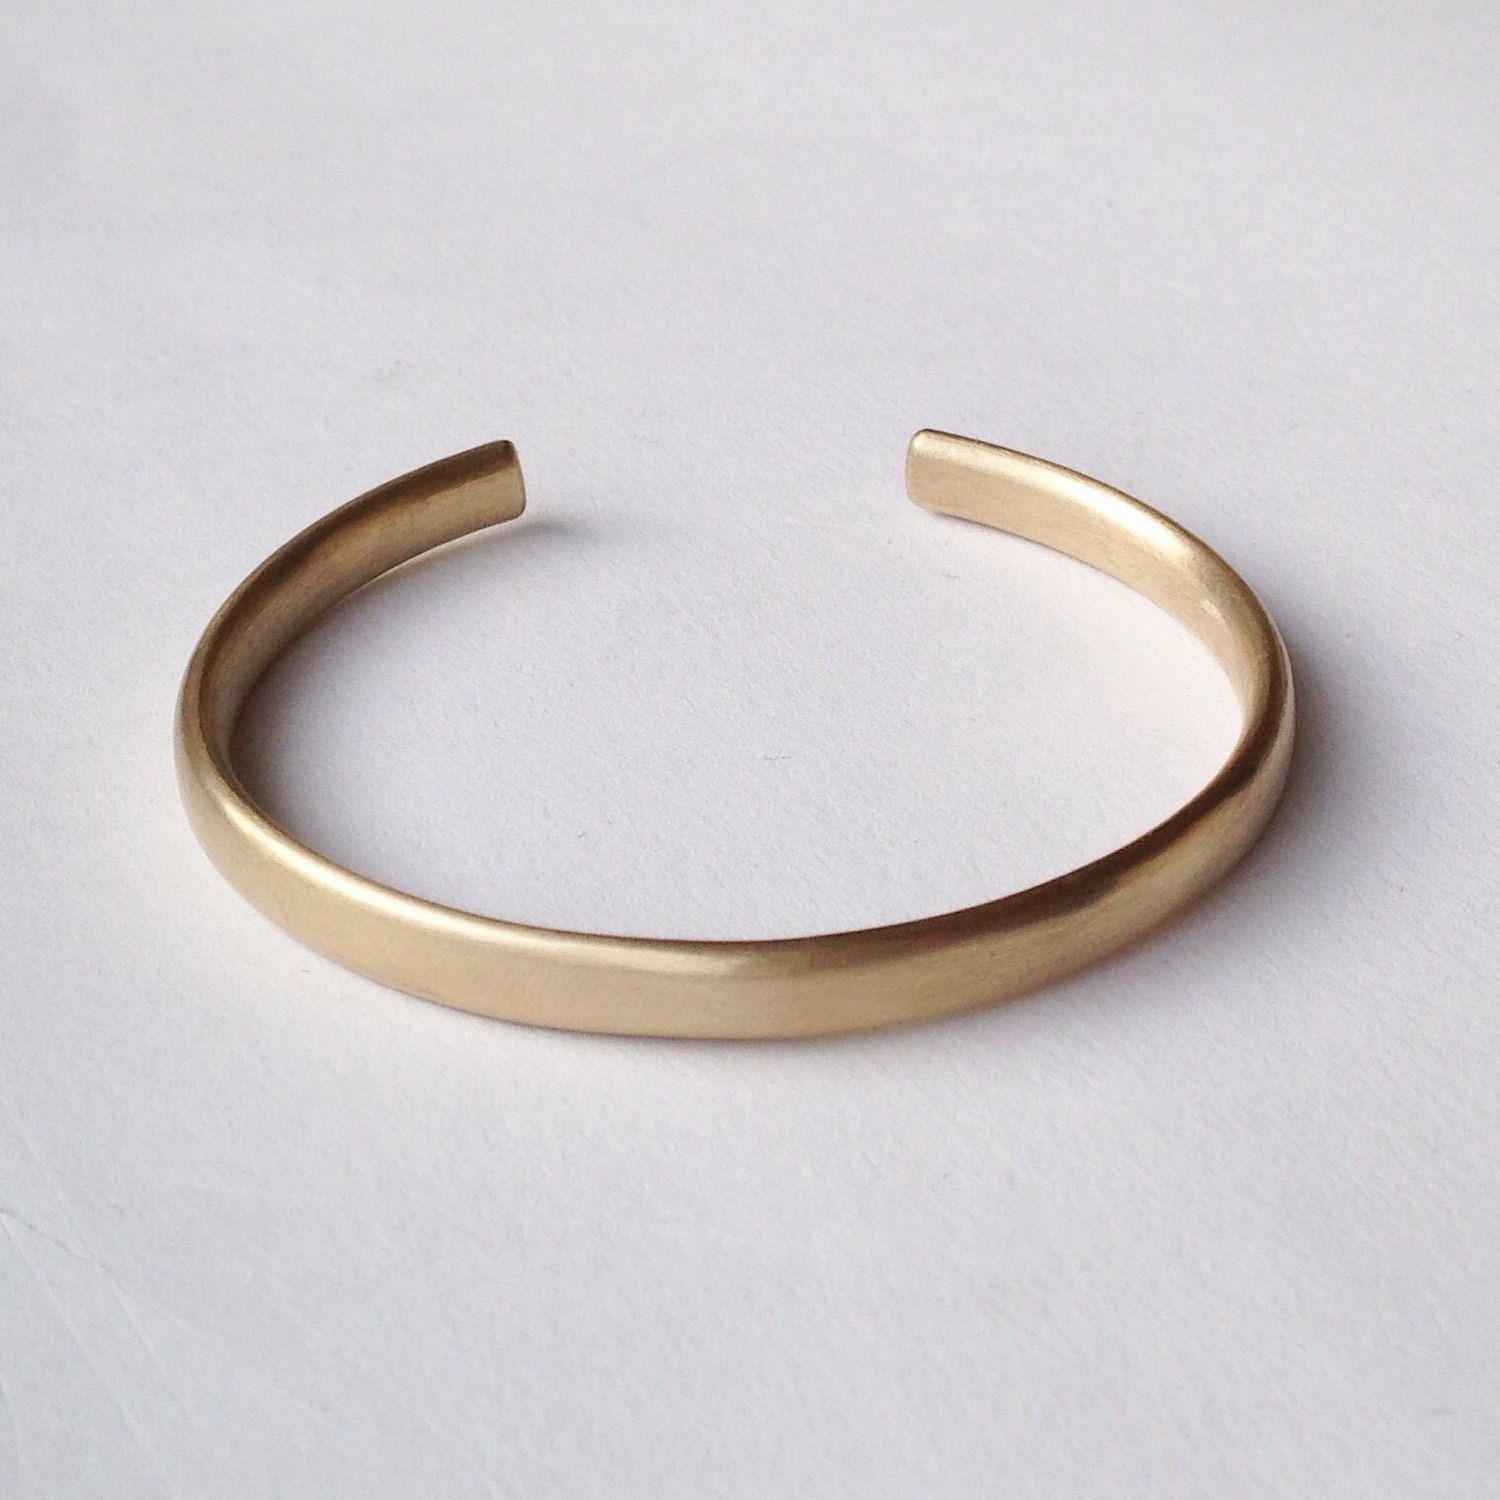 bangle made diamond bangles bracelet italian fine twist open gd bracelets alt setra gold products